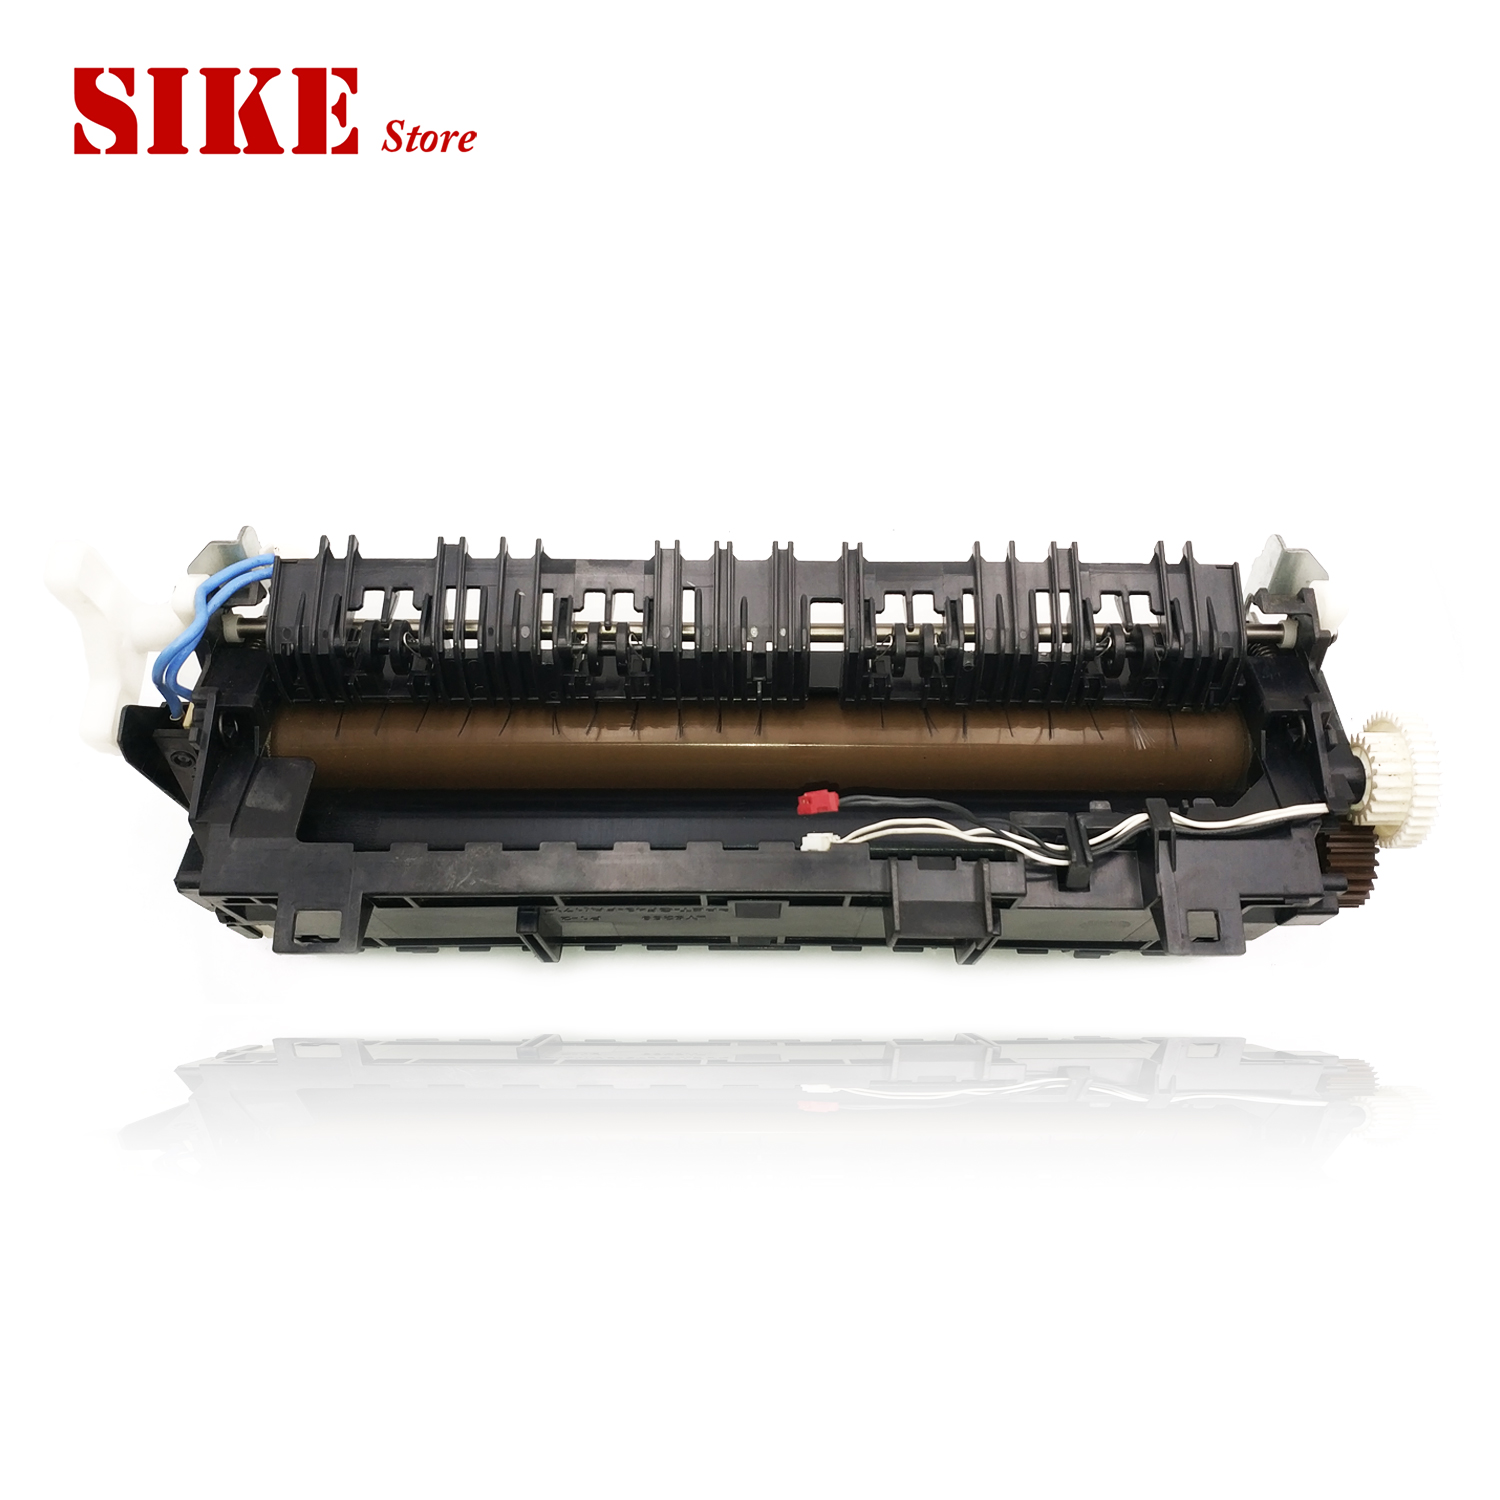 Fuser Unit Assy For Brother DCP-8110D DCP-8110DN DCP-8112DN DCP 8110 8112 DCP8110 DCP8112 Fuser Assembly LY5610001 LU9215001